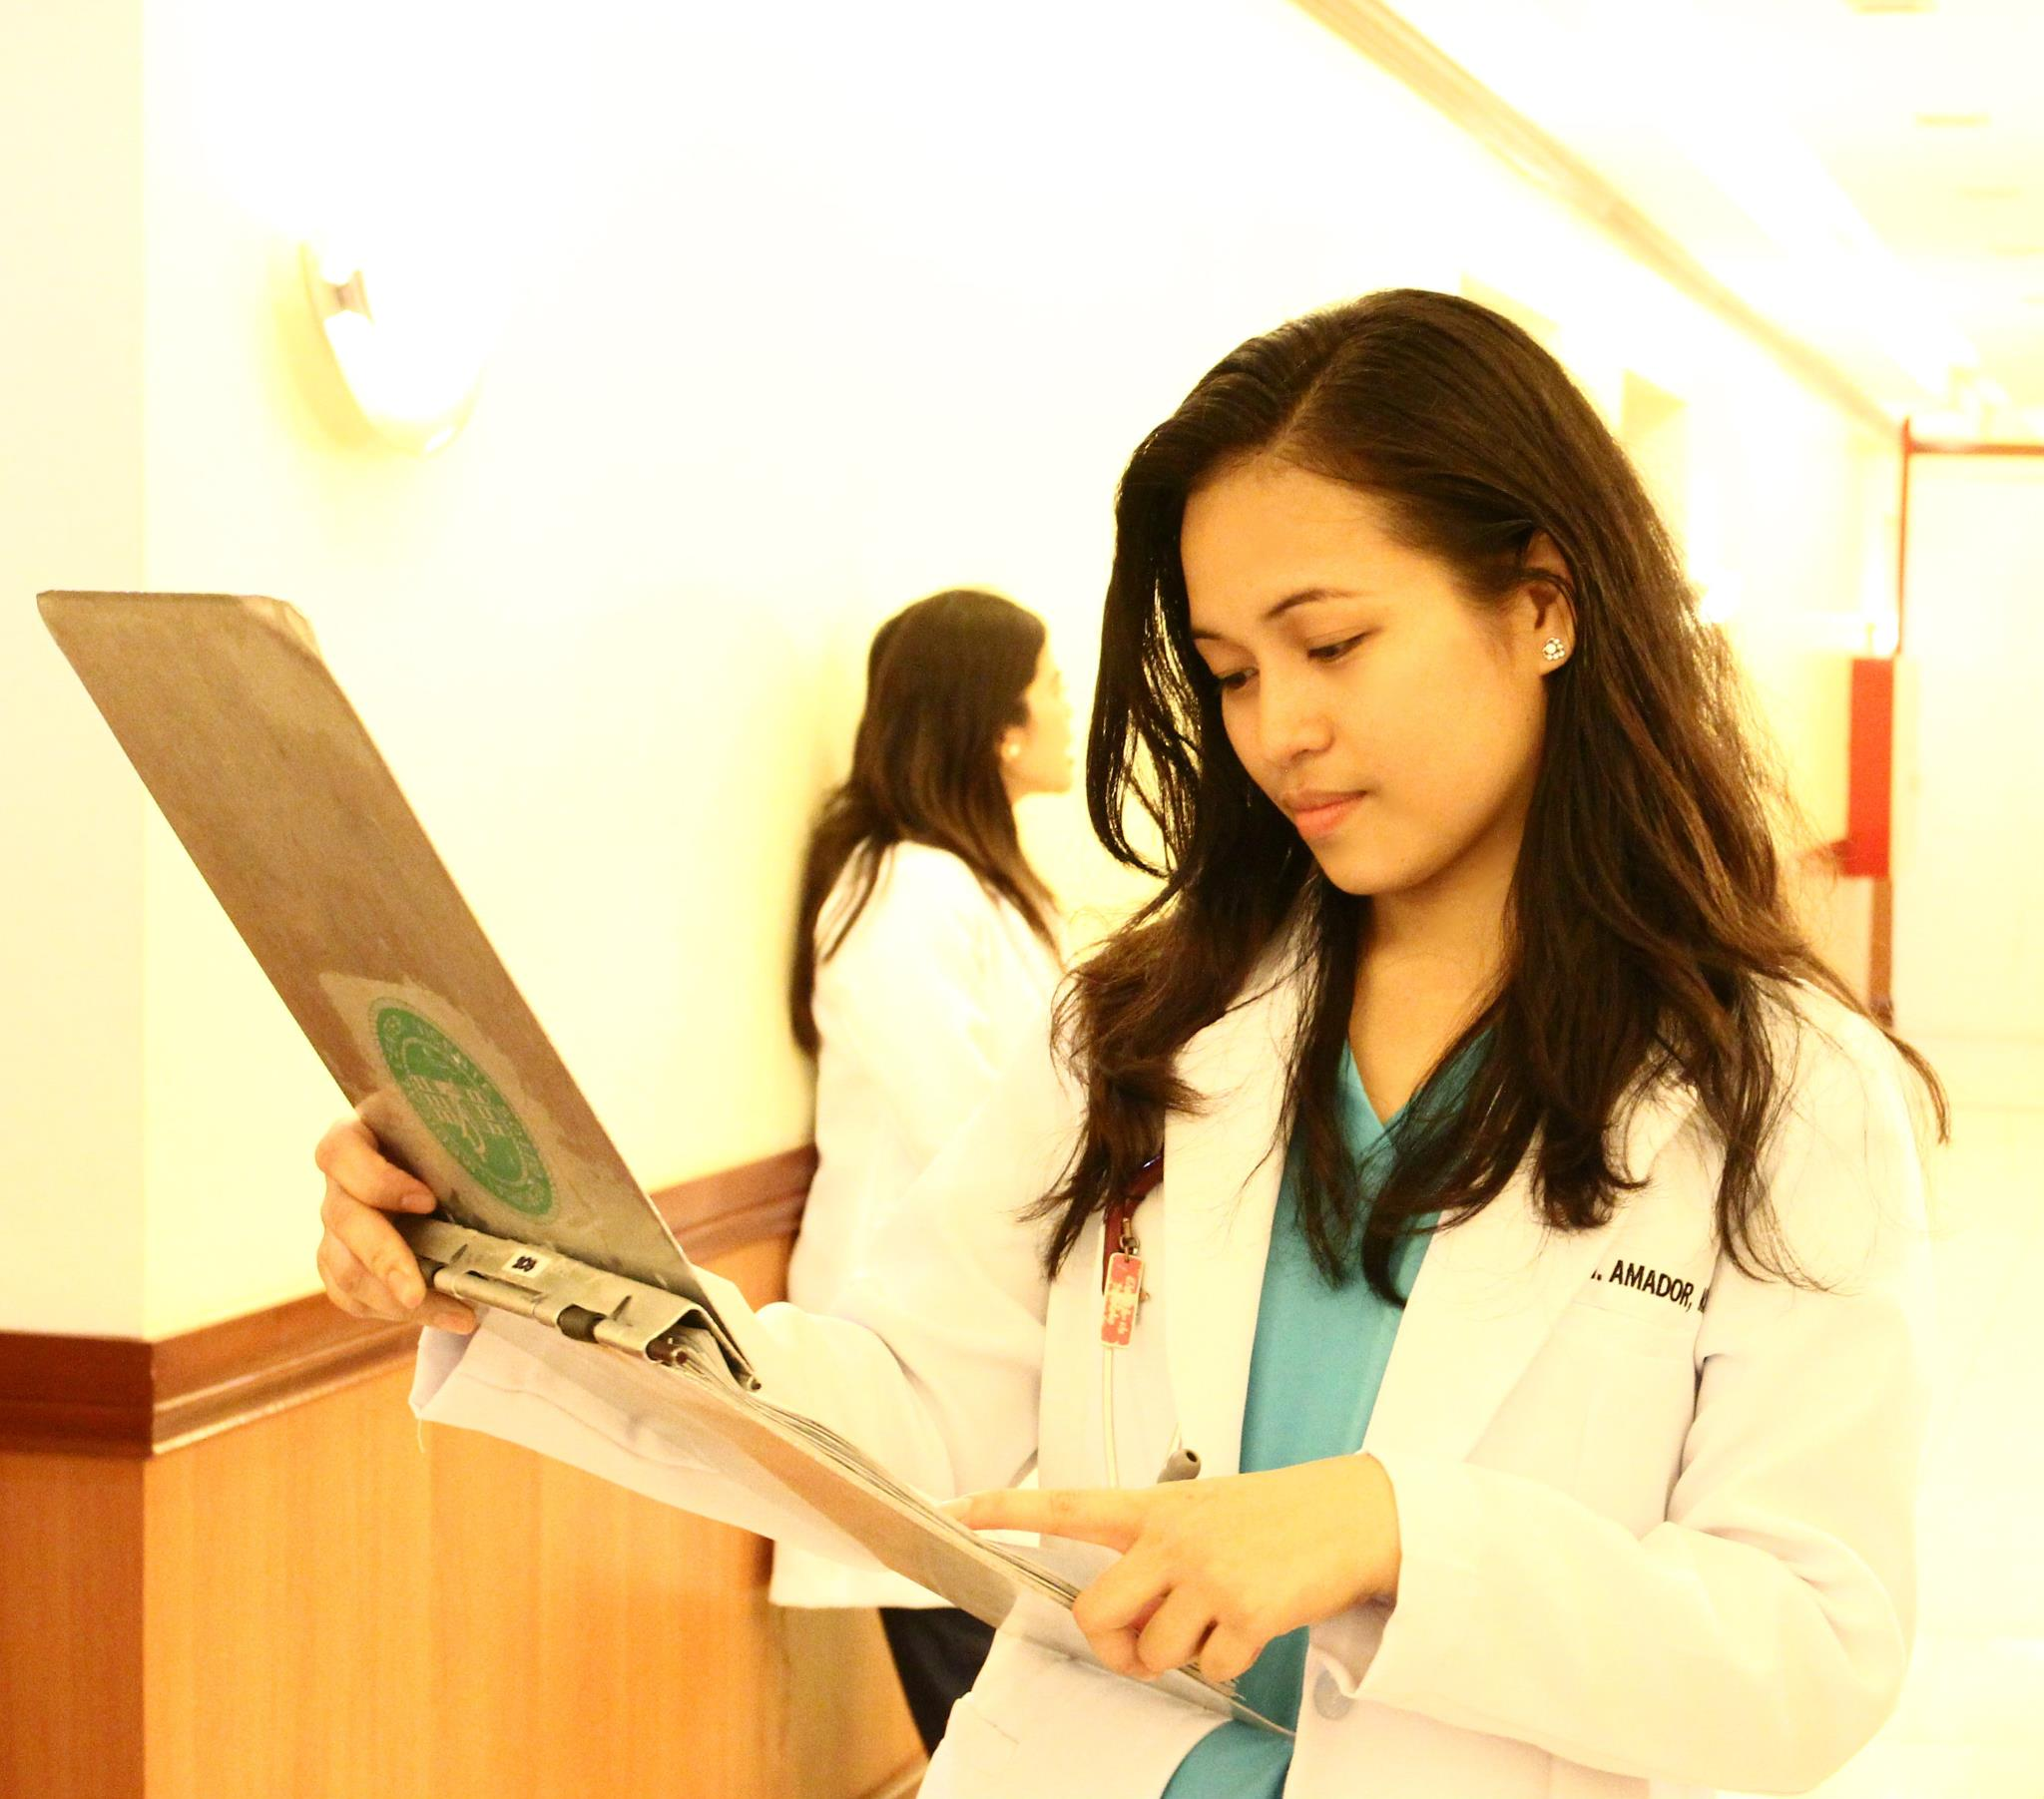 2 Biliranons pass physician's licensure exam